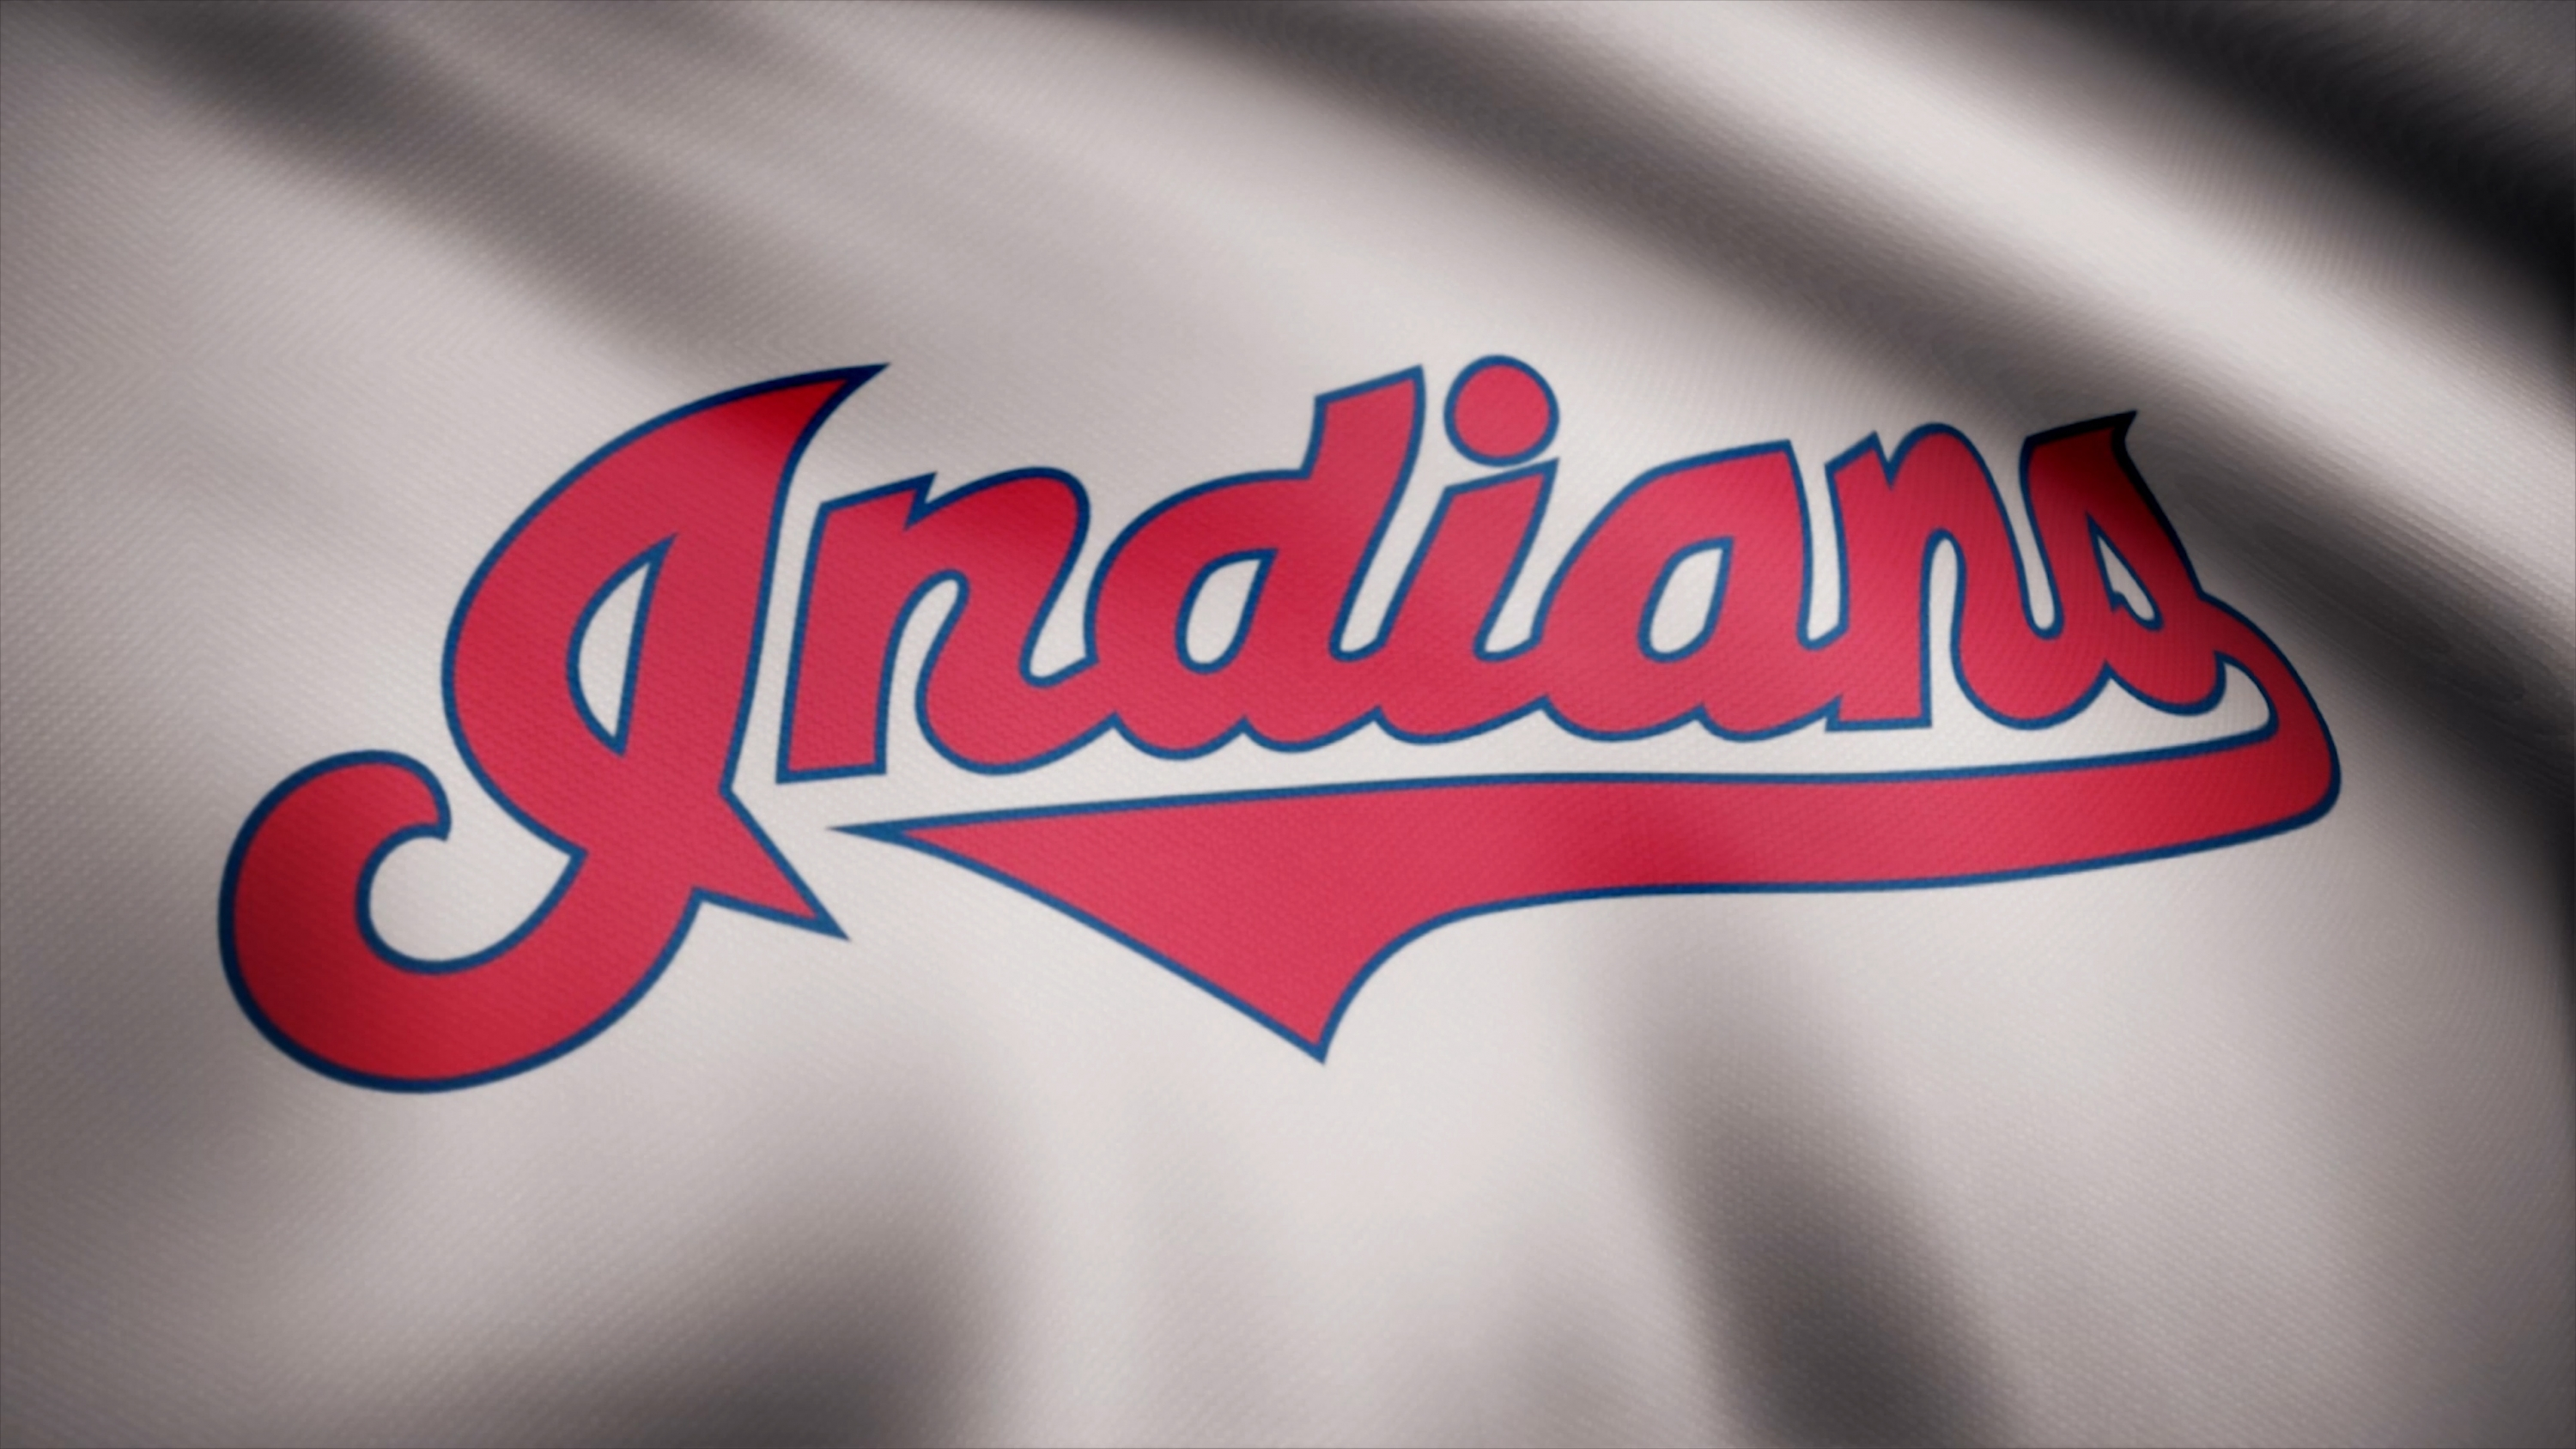 Cleveland Indians Name Change Could Inspire Culture Shift